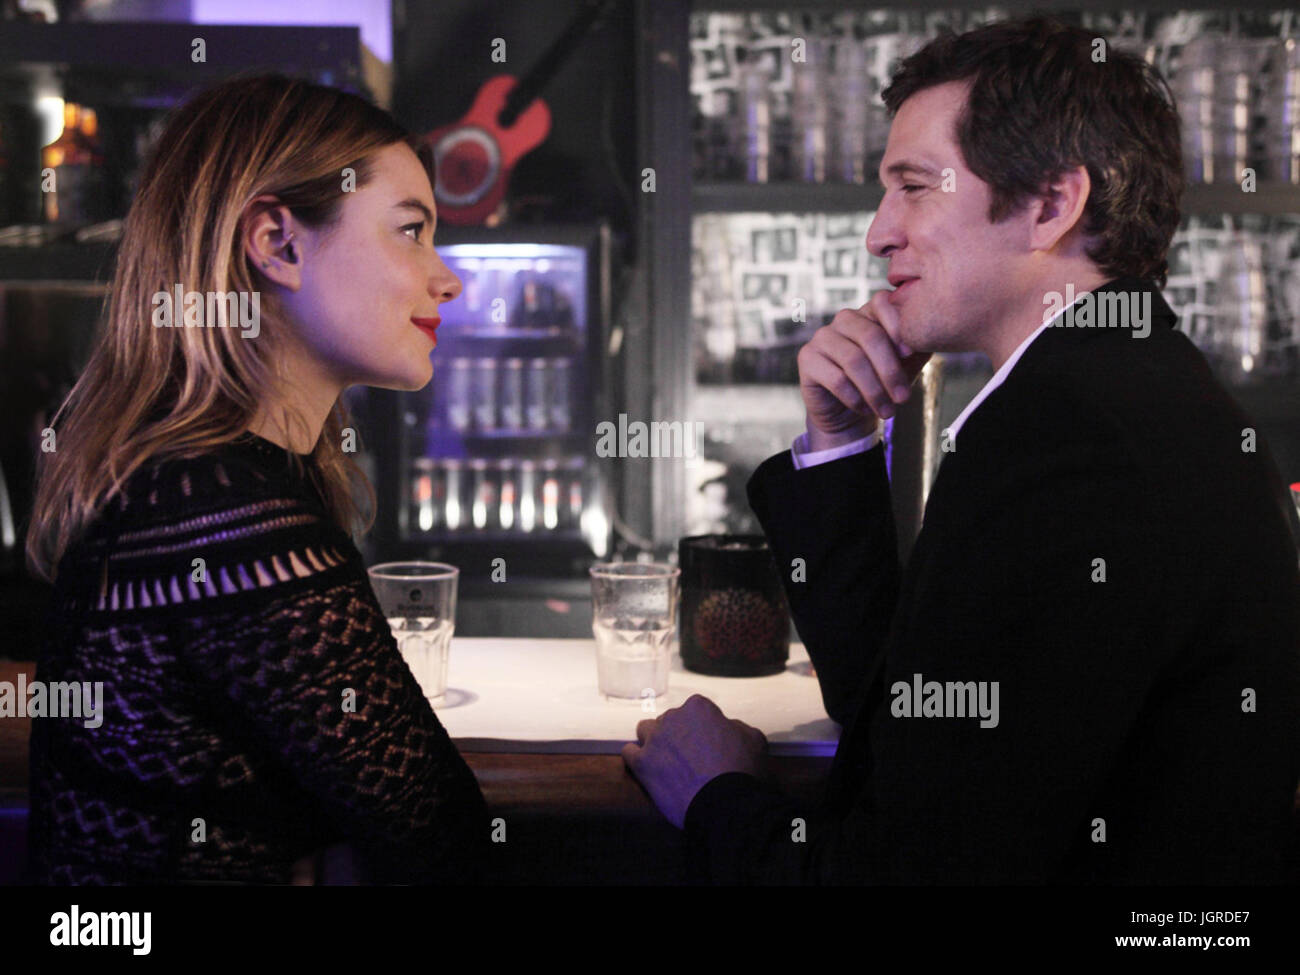 ROCK'N ROLL (2017)  CAMILLE ROWE  GUILLAUME CANET  GUILLAUME CANET (DIR)  PATHE/MOVIESTORE COLLECTION LTD - Stock Image